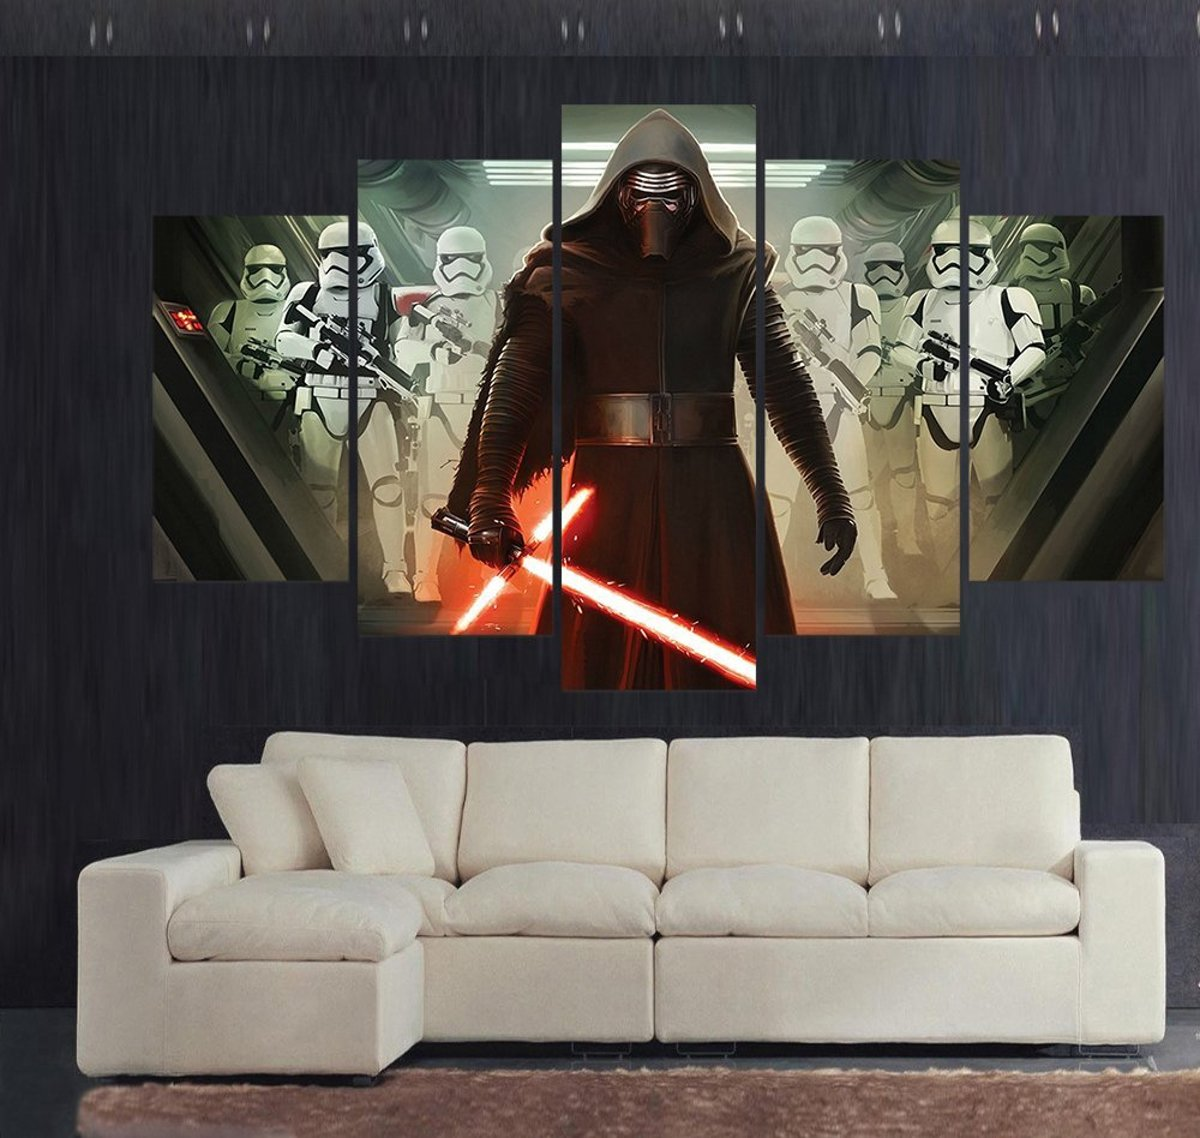 Vijfluik Home Decor: Star Wars, Kylo Ren en de First Order Stormtroopers kopen